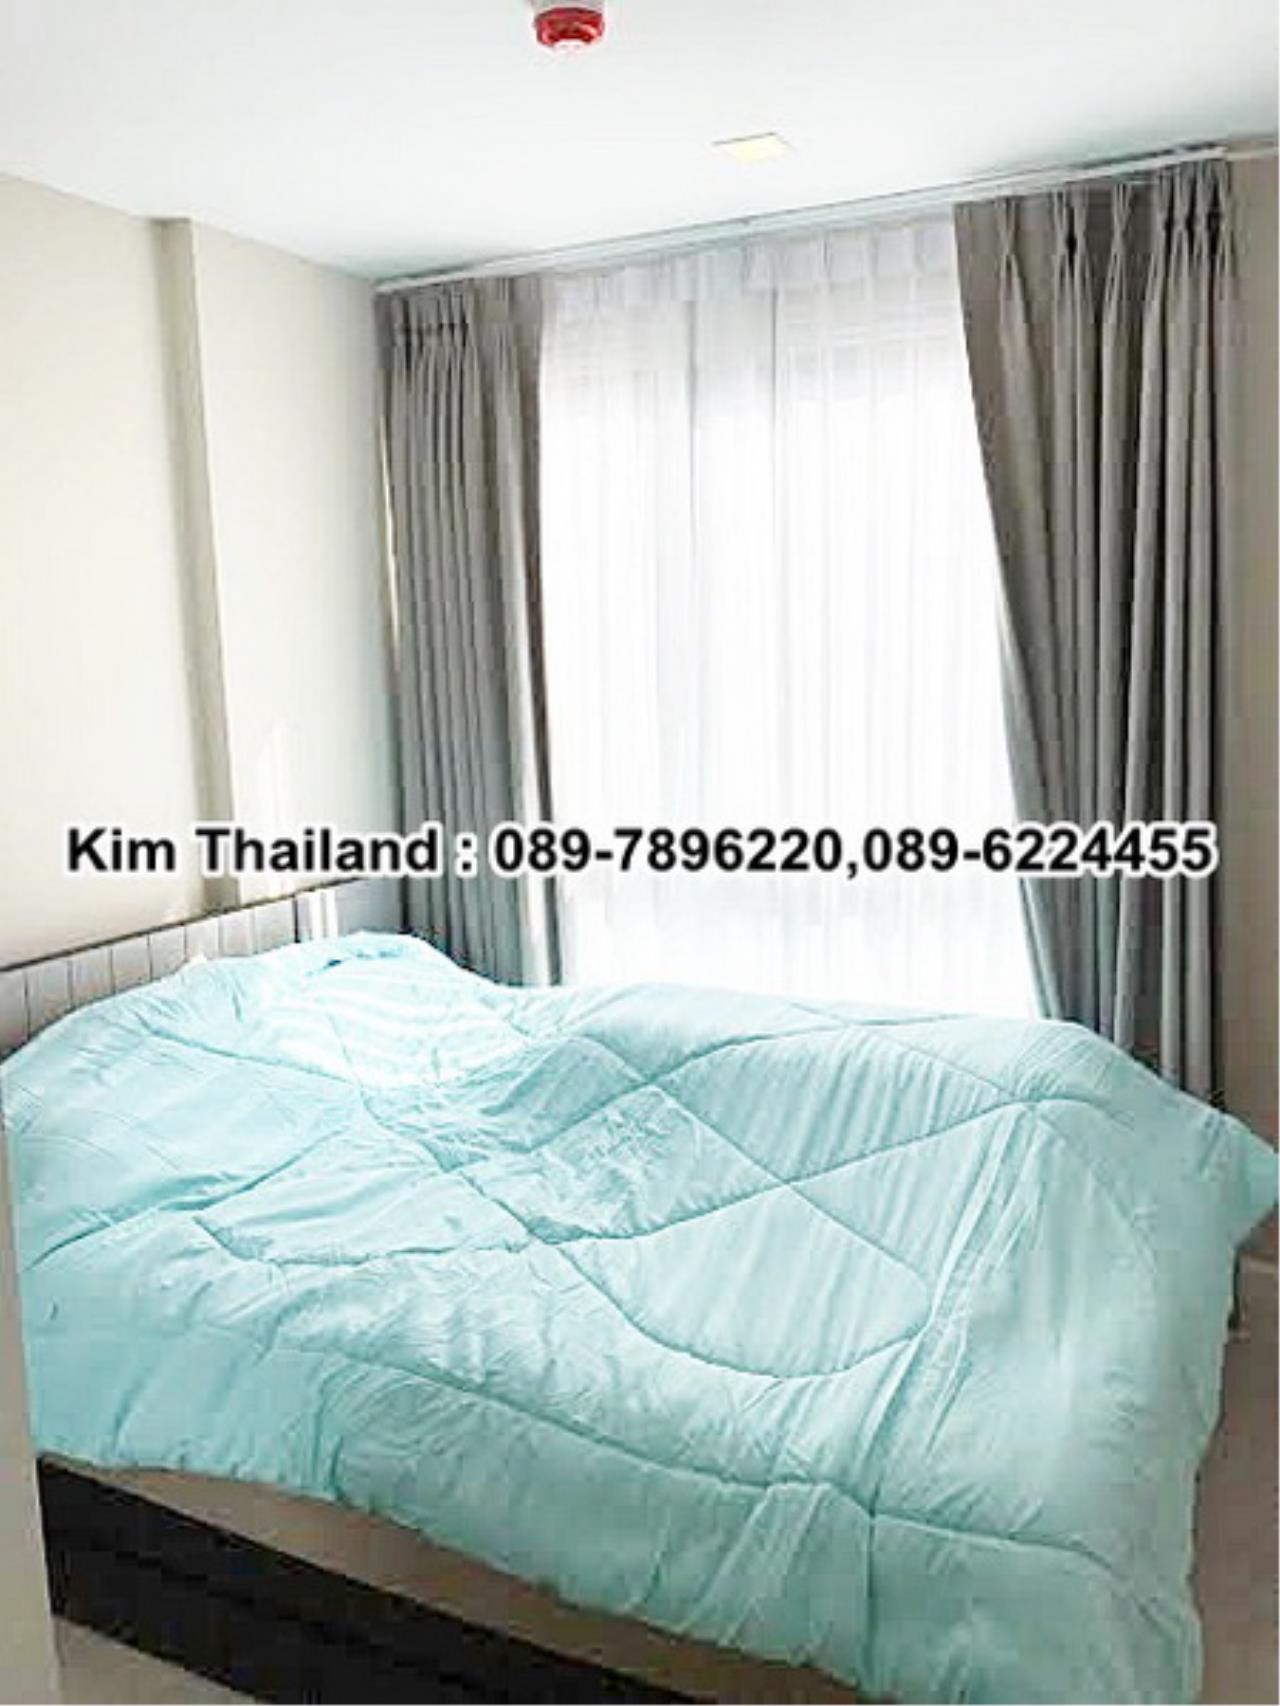 BKKcondorental Agency's For rent, Condo Metroluxe Rama 4., Area 28 sq.m. 1 bedroom. Rental 15,000 THB per month. 5